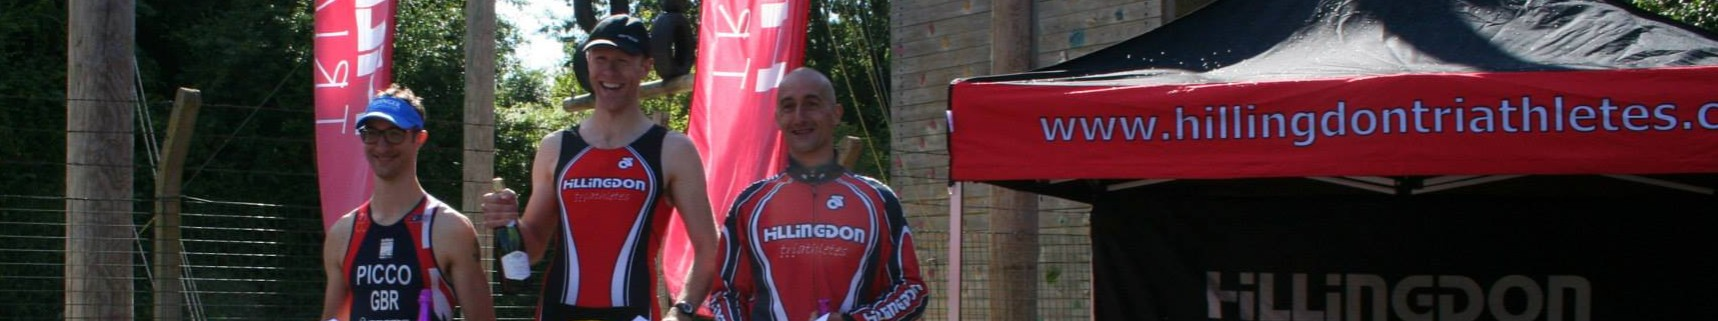 Triathlon - Hillingdon Triathletes